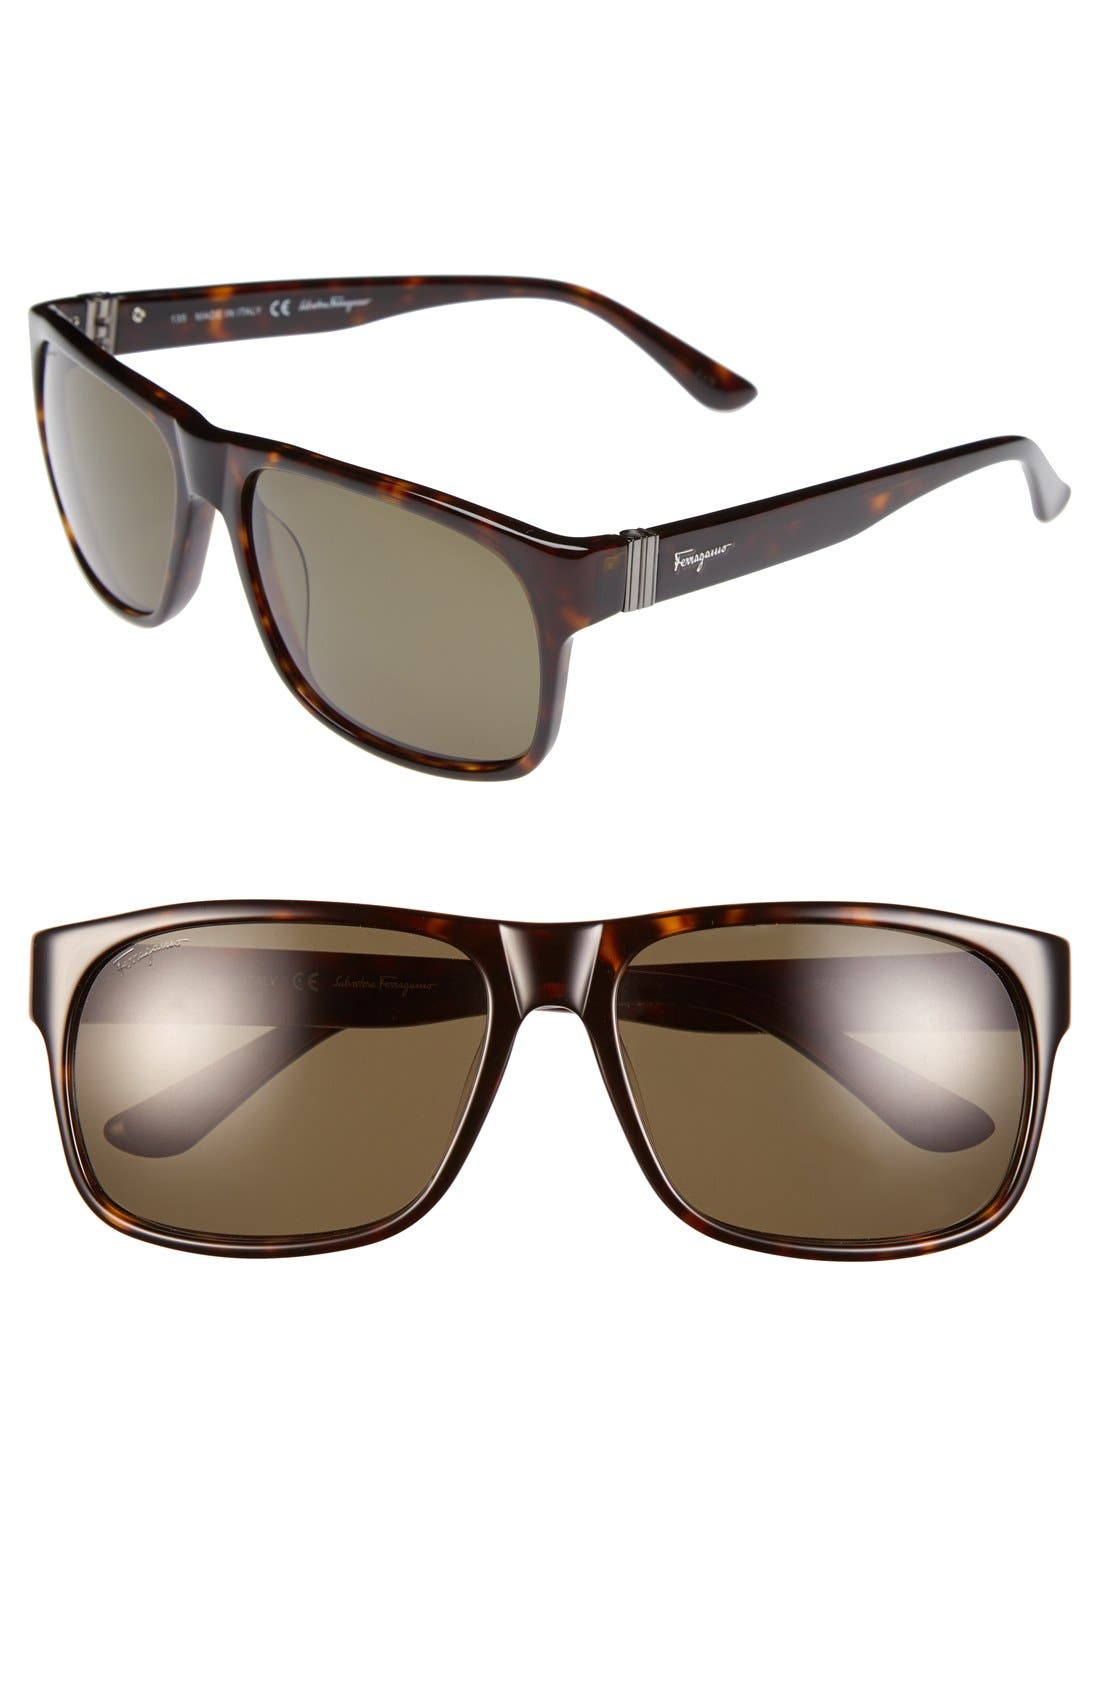 Alternate Image 1 Selected - Salvatore Ferragamo 57mm Sunglasses